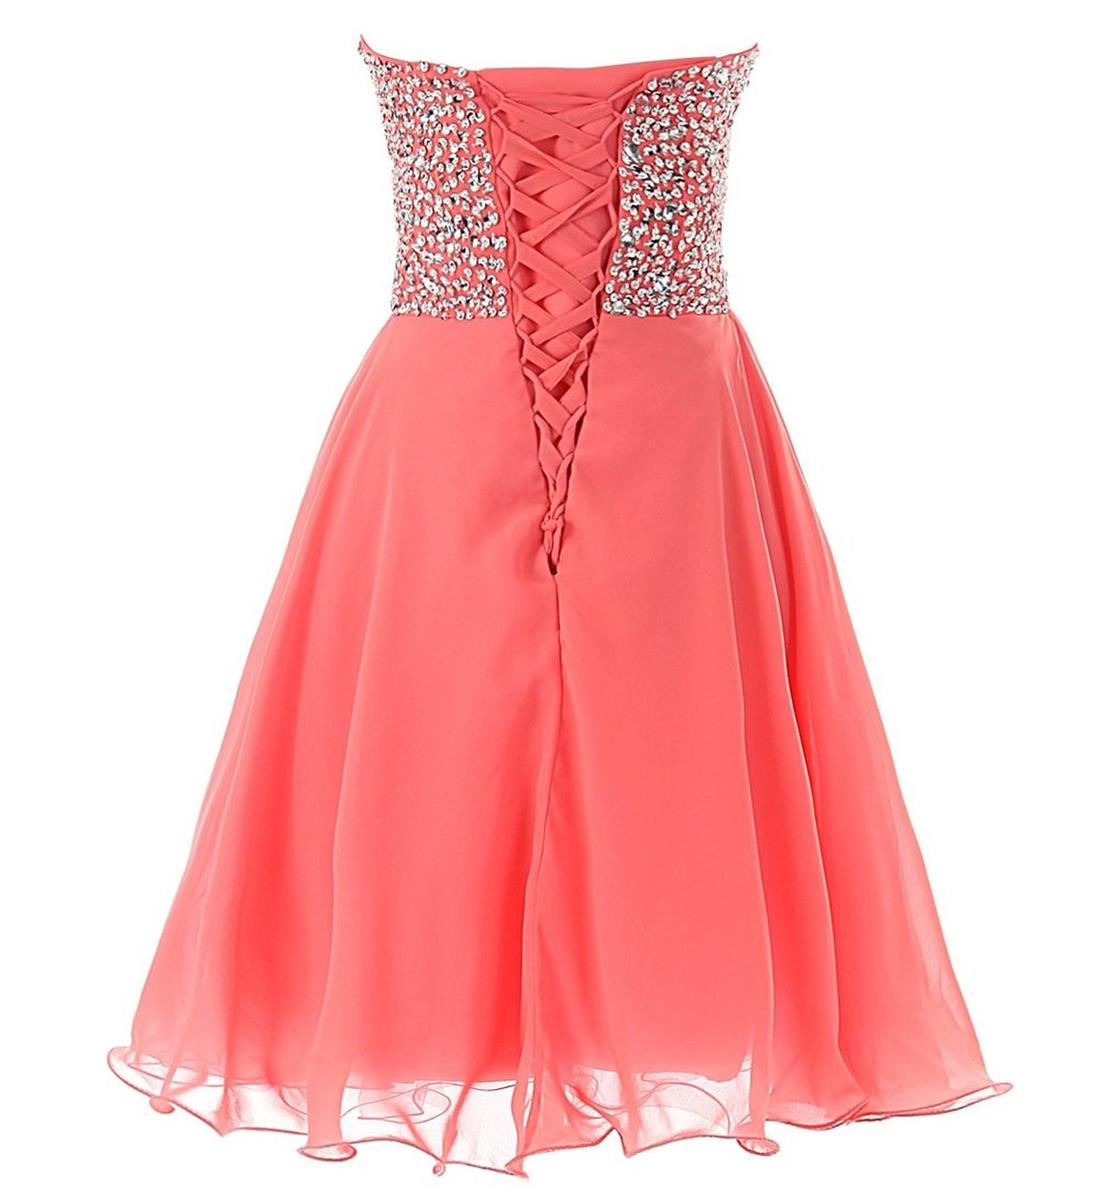 Lovely Short Watermelon Sequins Lace-up Prom Dresses, Short Prom Dresses, Homecoming Dresses